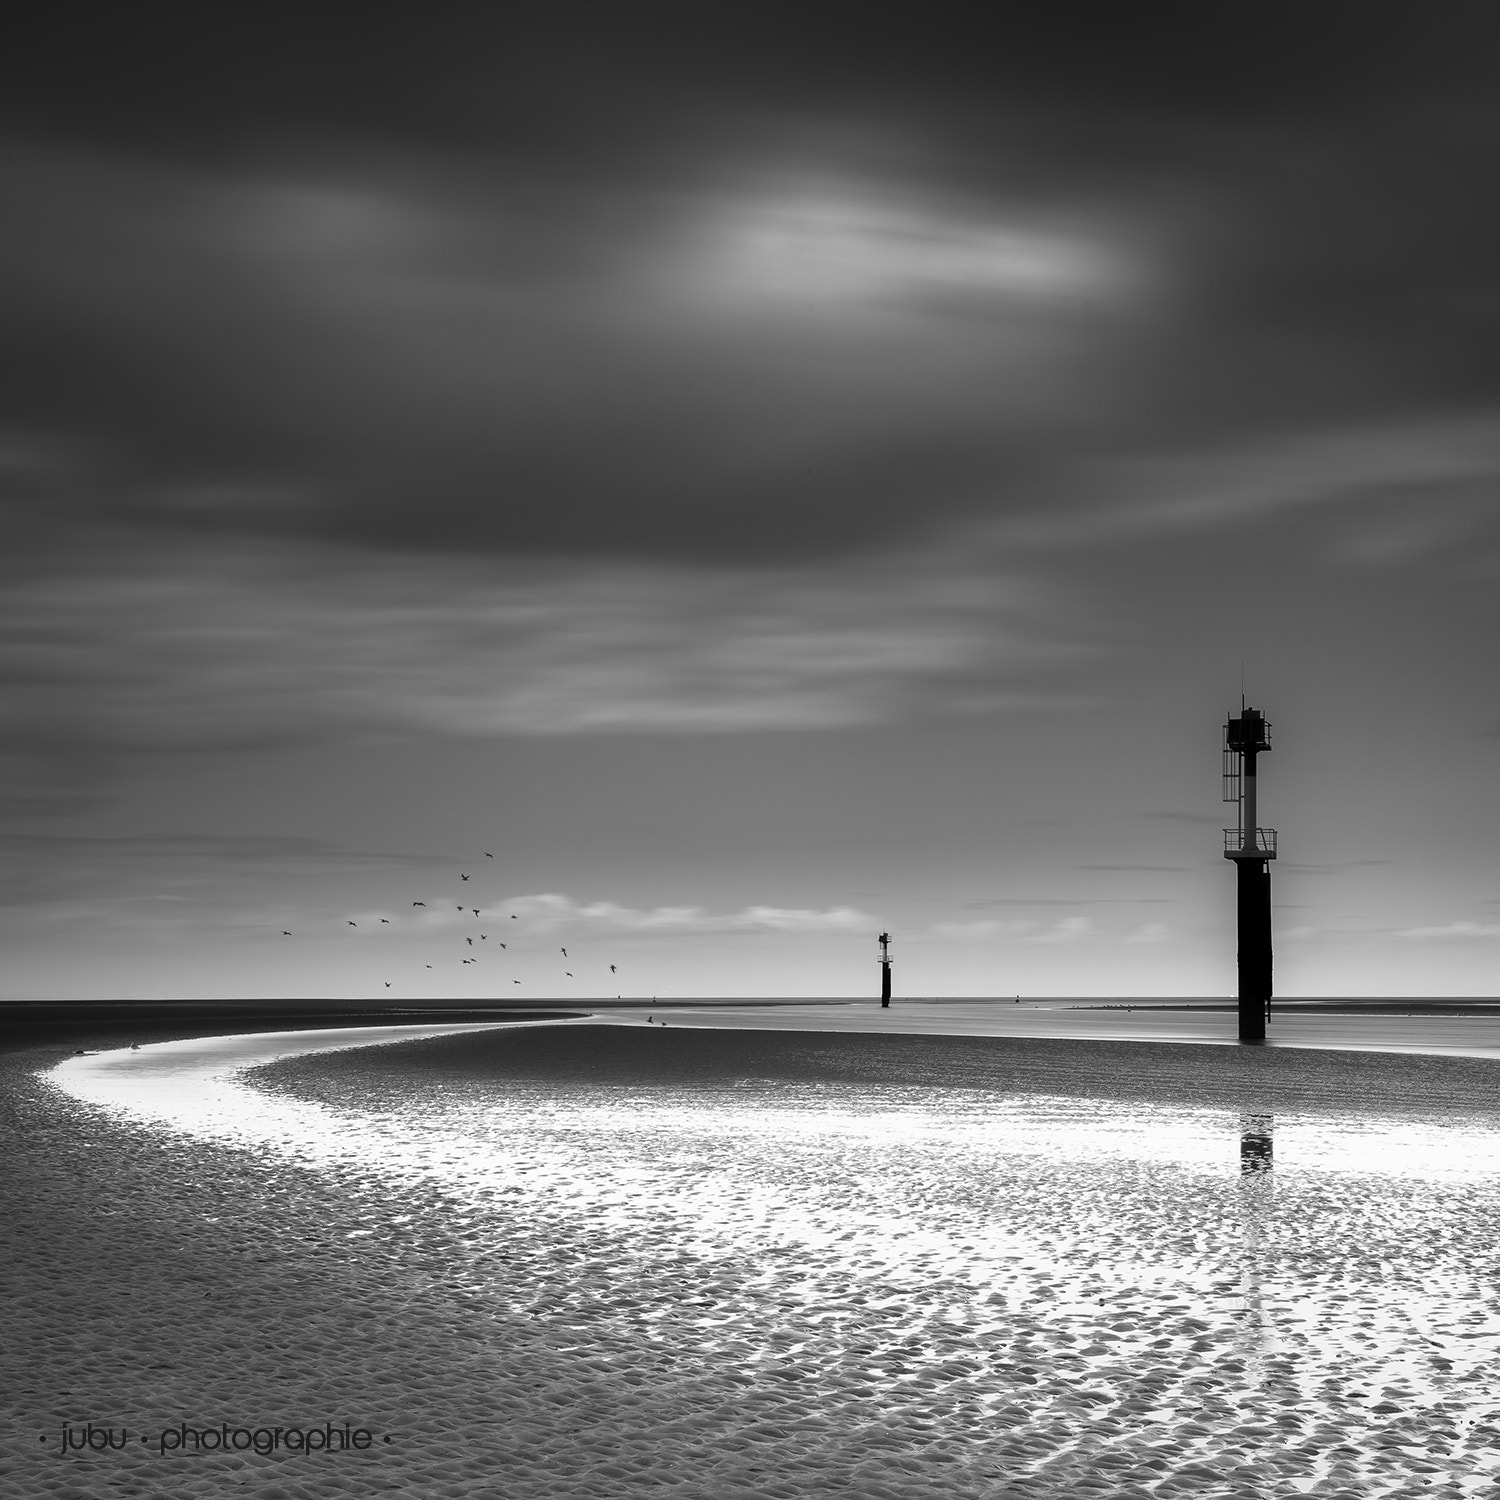 Photograph Cab Beach by Jubu Photographie on 500px